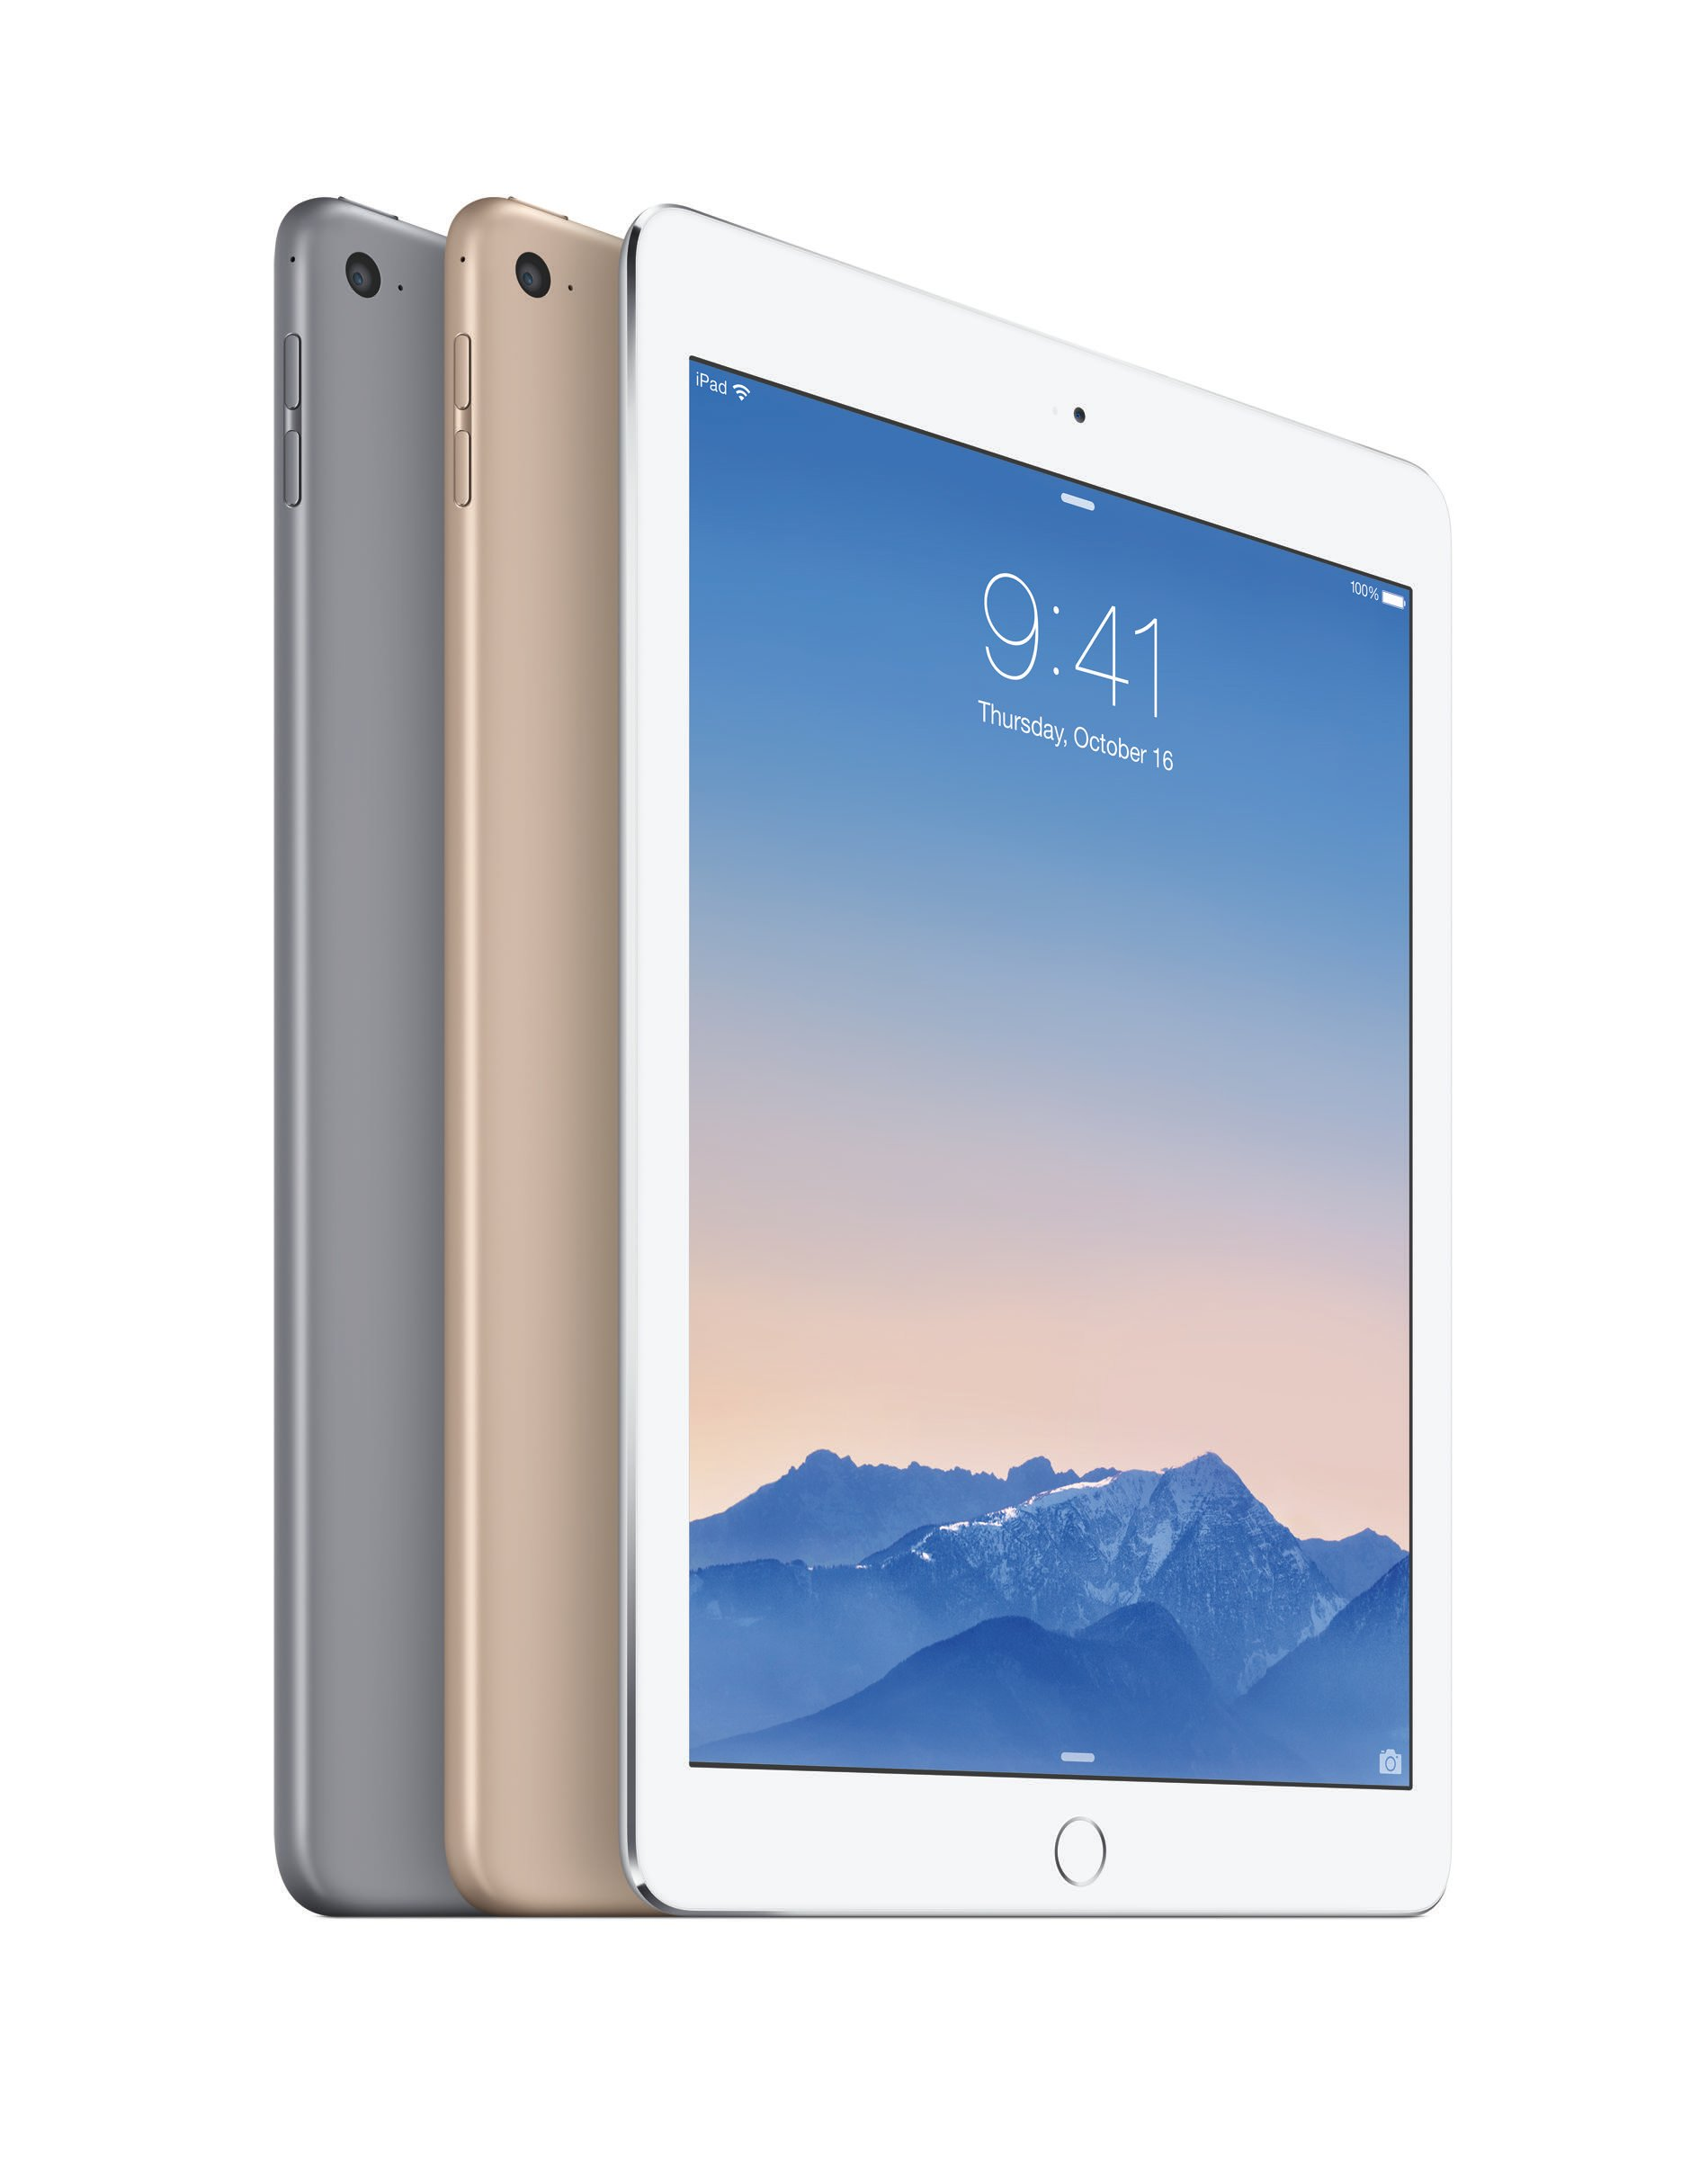 Last minute Target Cartwheel deals include savings on the iPad Air 2